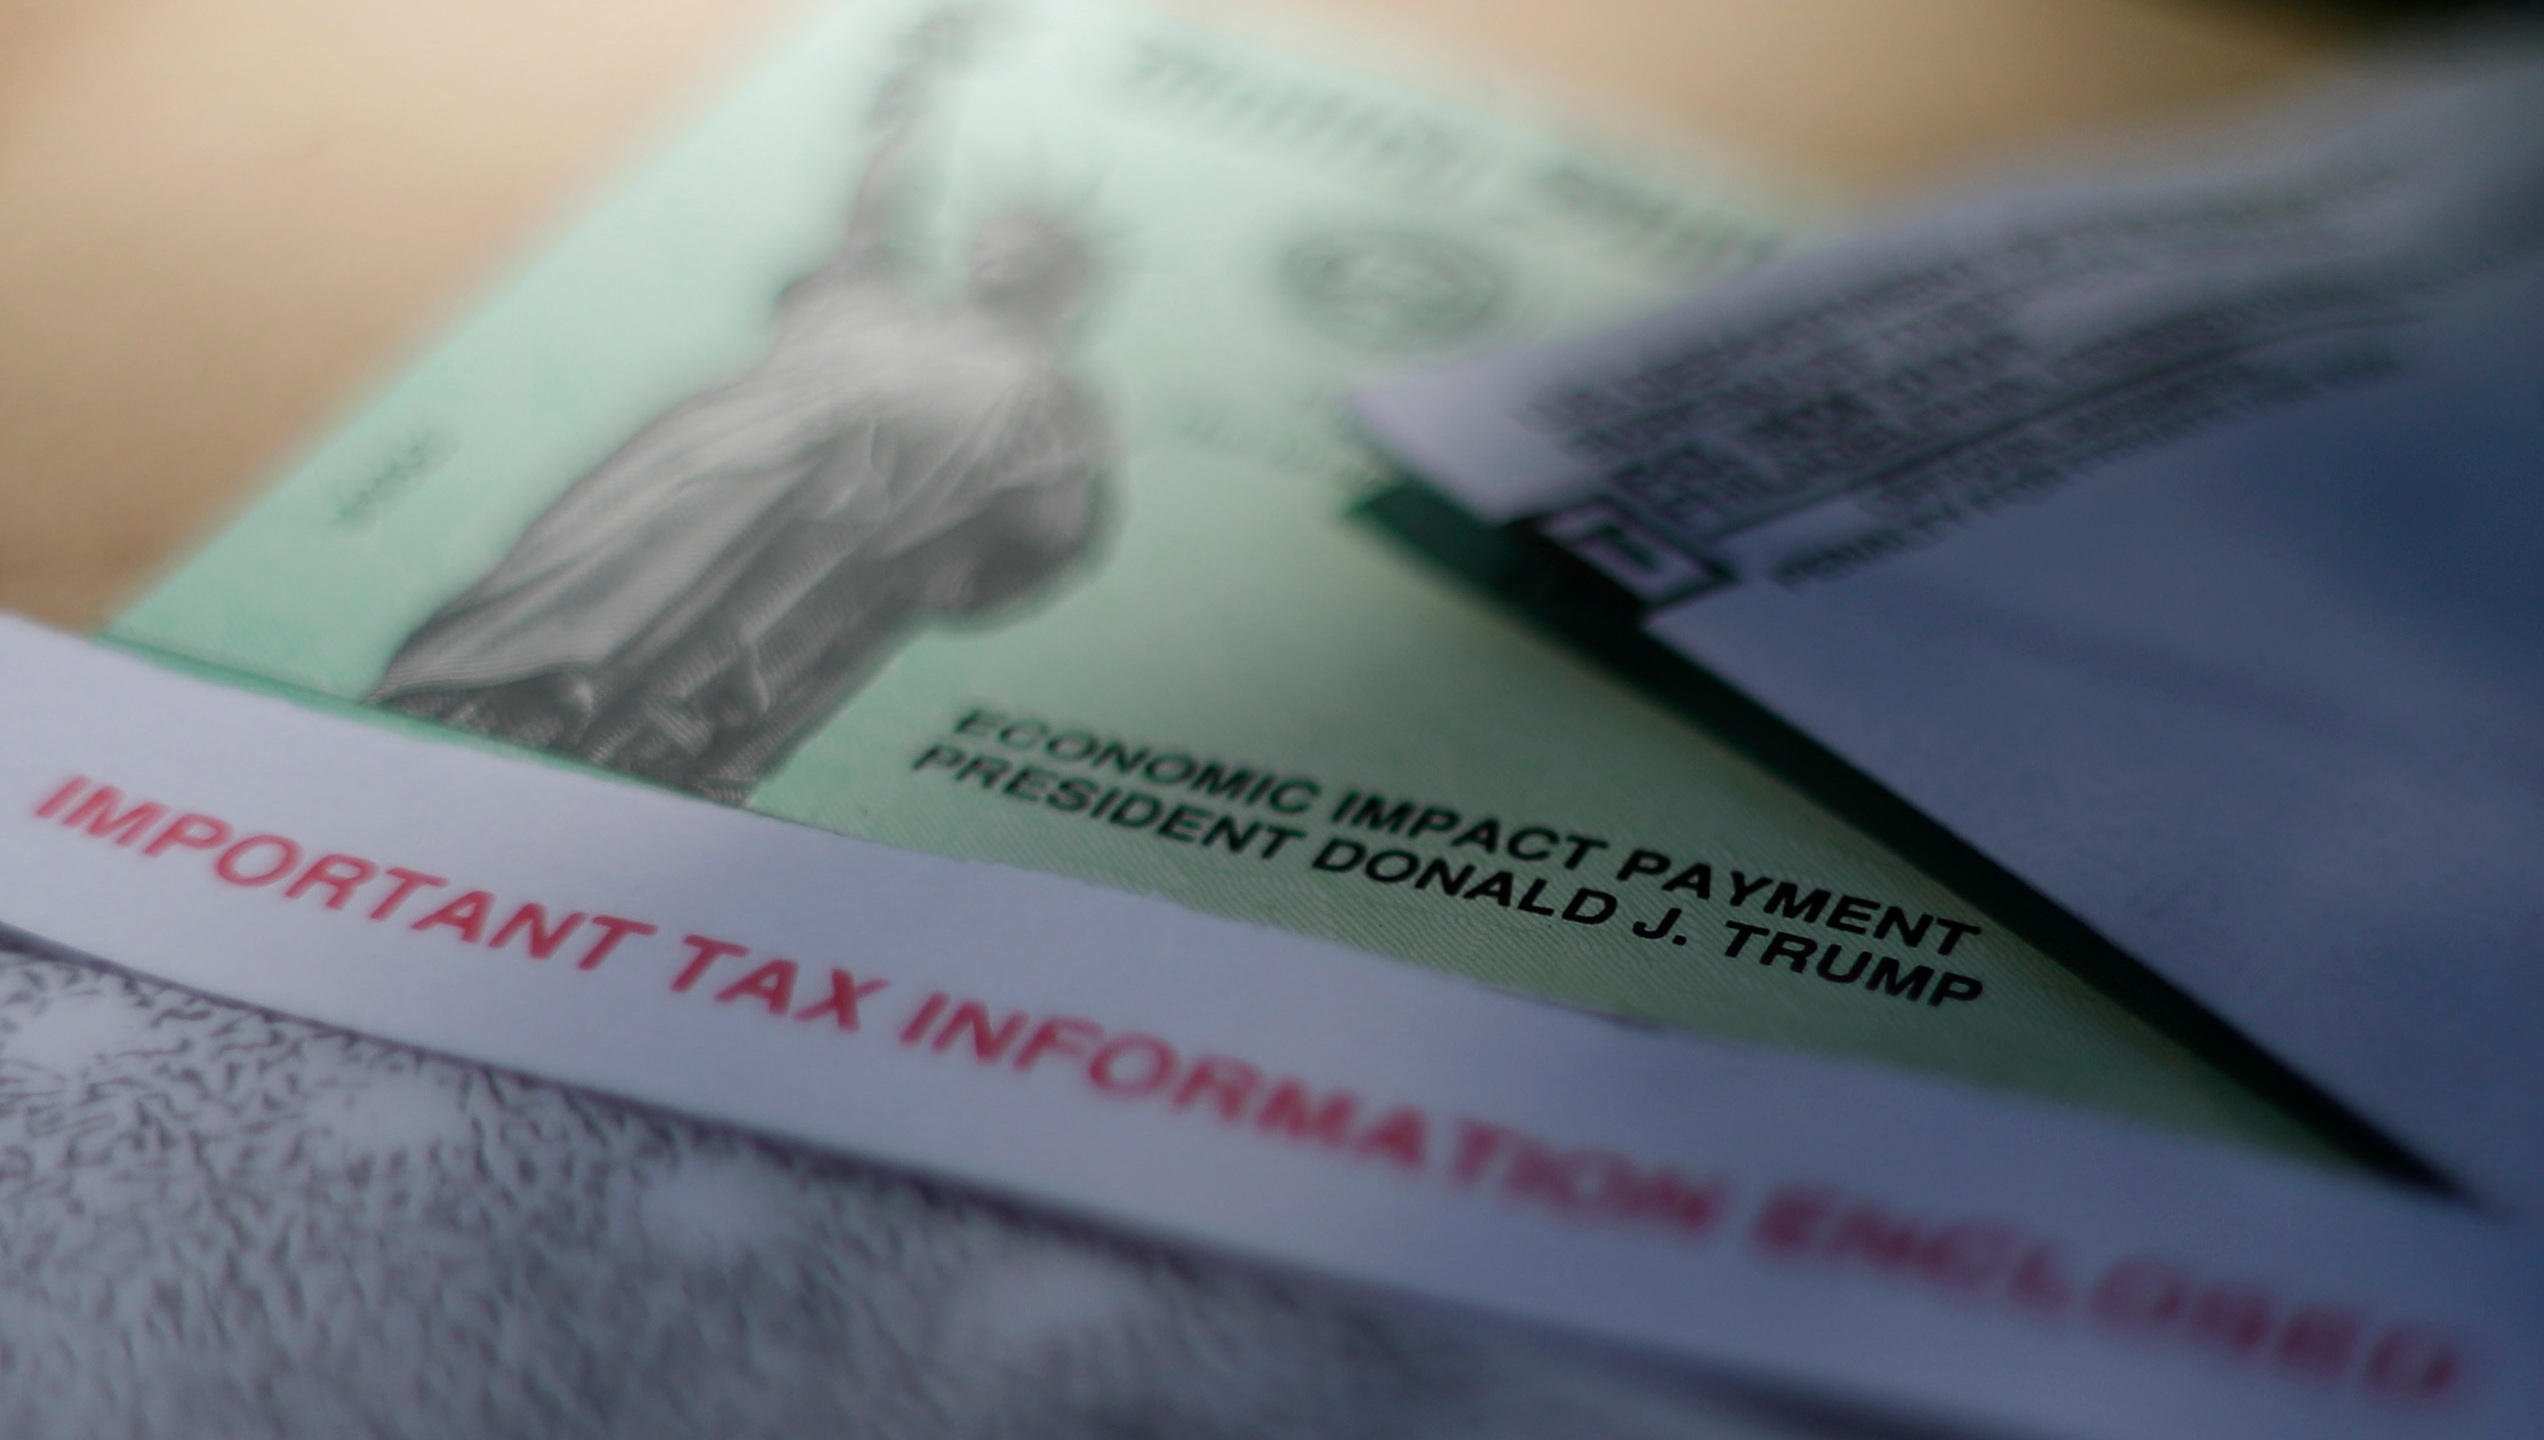 President Donald J. Trump's name is printed on a stimulus check issued by the IRS to help combat the adverse economic effects of the new coronavirus outbreak in San Antonio. (AP Photo/Eric Gay, File)